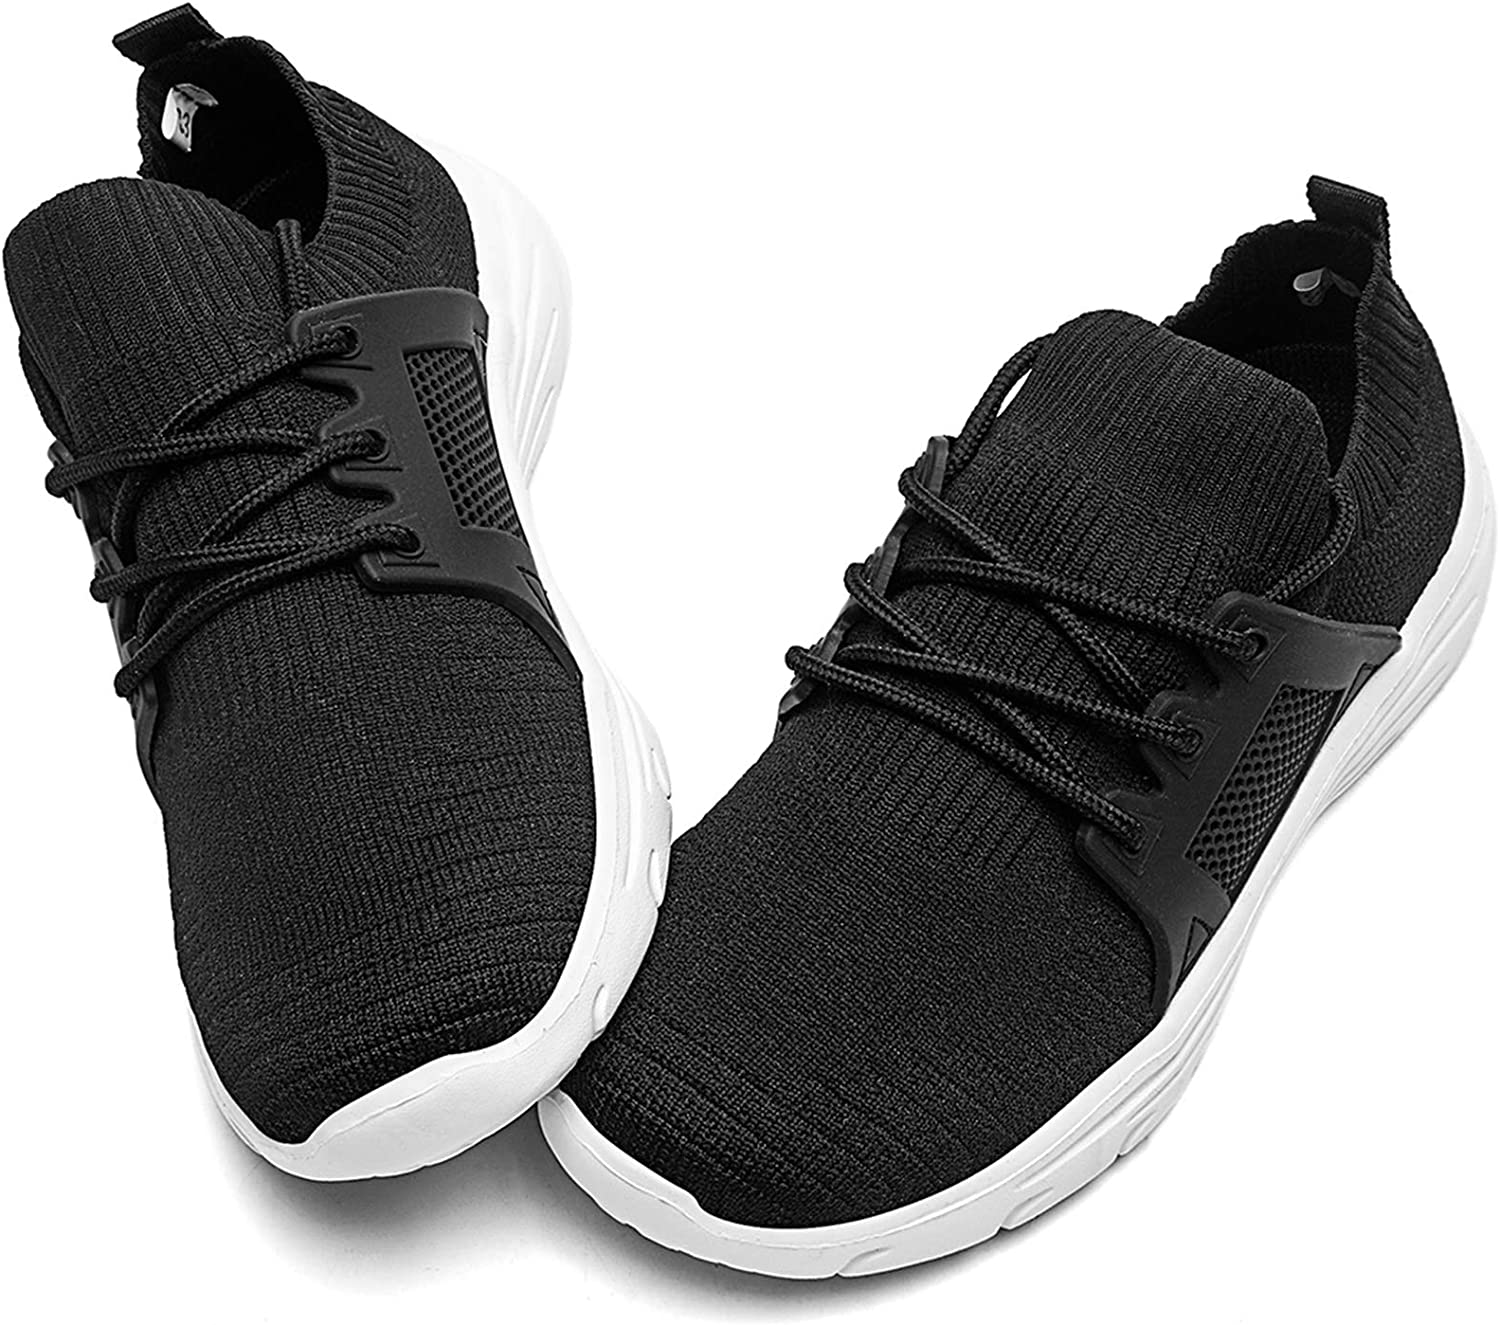 Running Shoes for Girls Raleigh Mall Boys Lightweight Super beauty product restock quality top Sne Comfortable on Slip